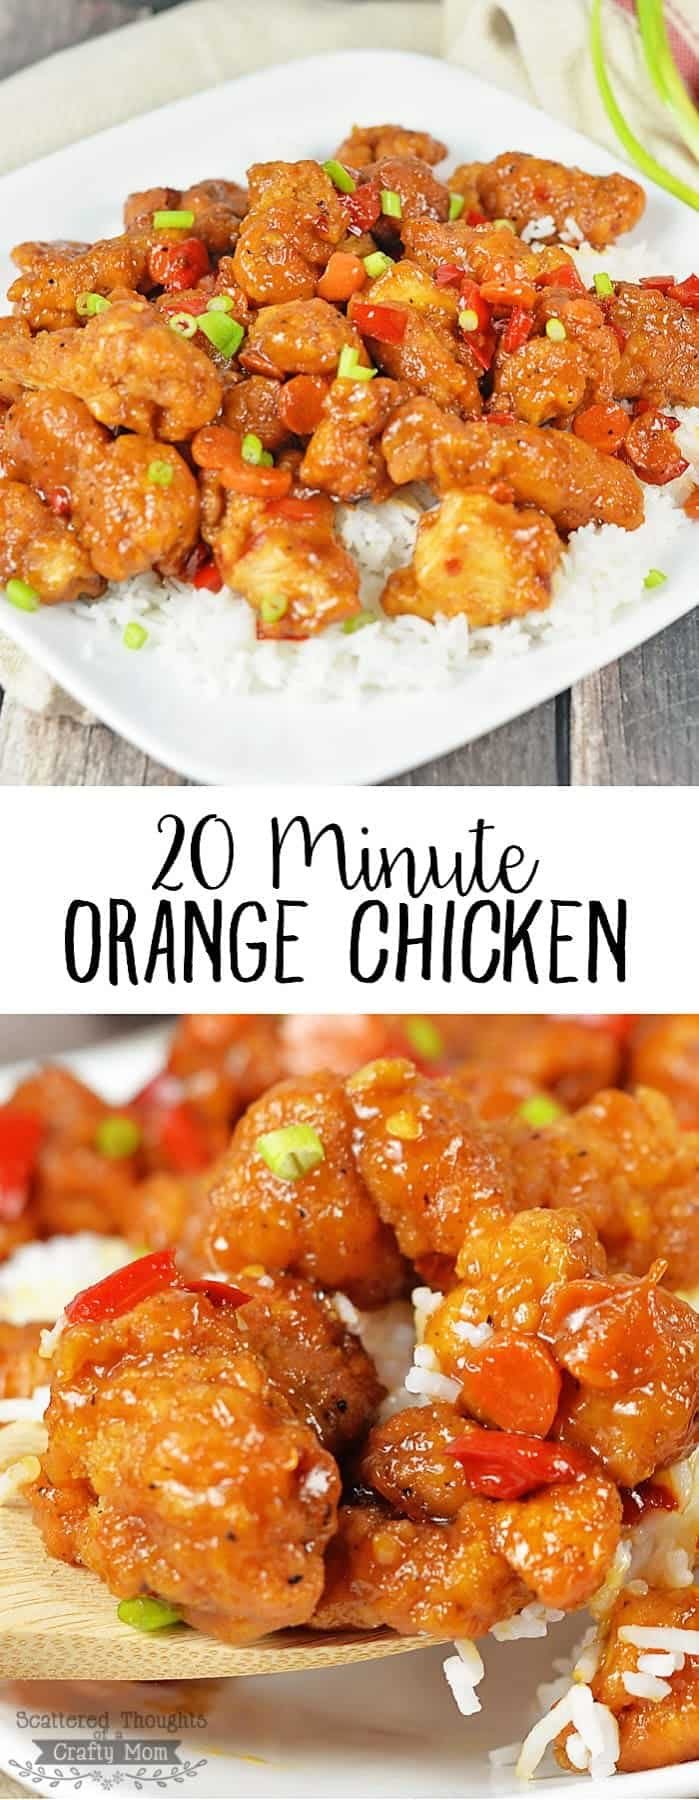 20 Minute Orange Chicken Recipe